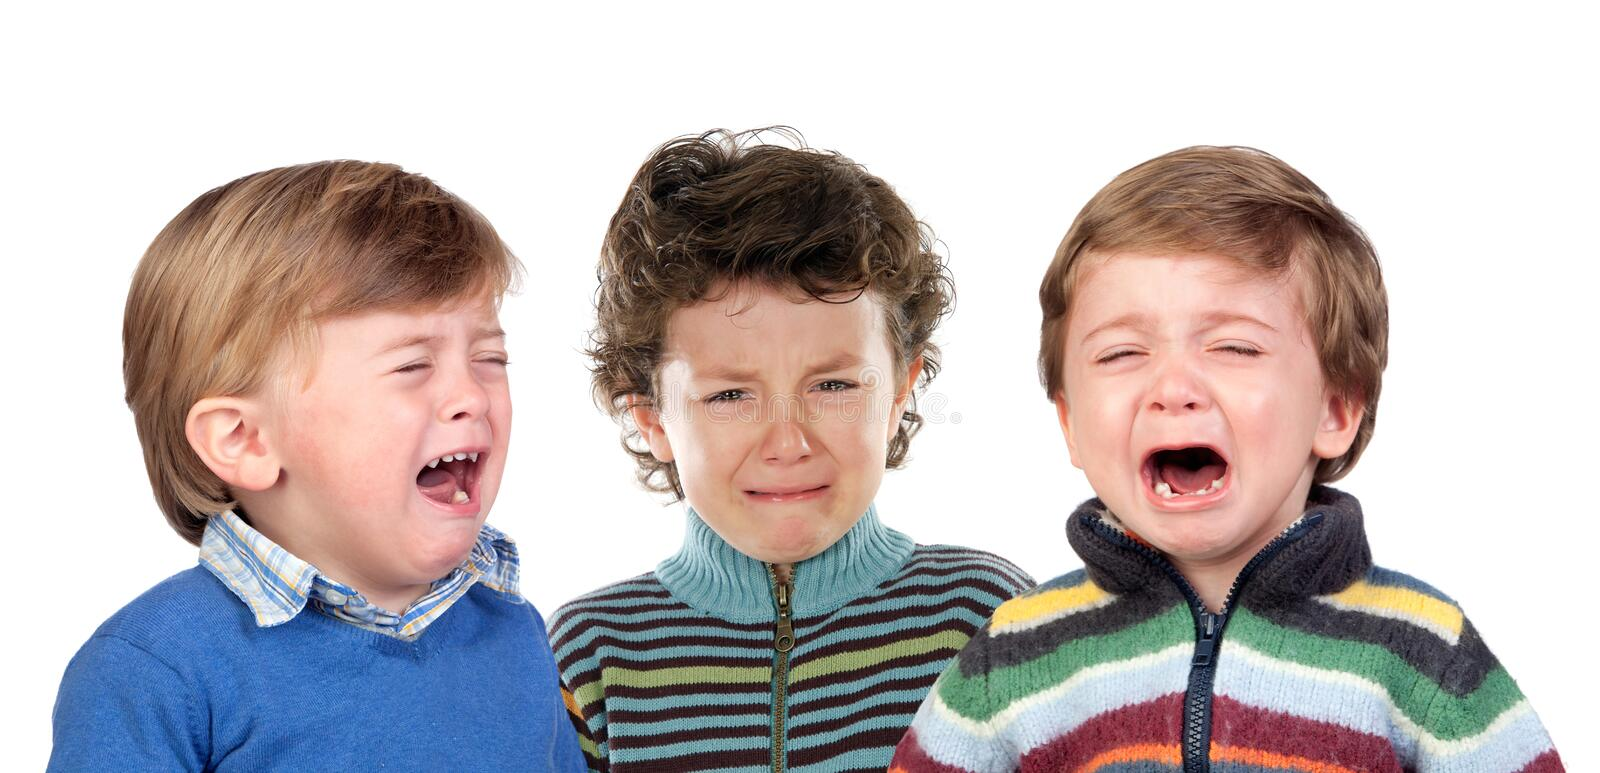 Children crying royalty free stock image